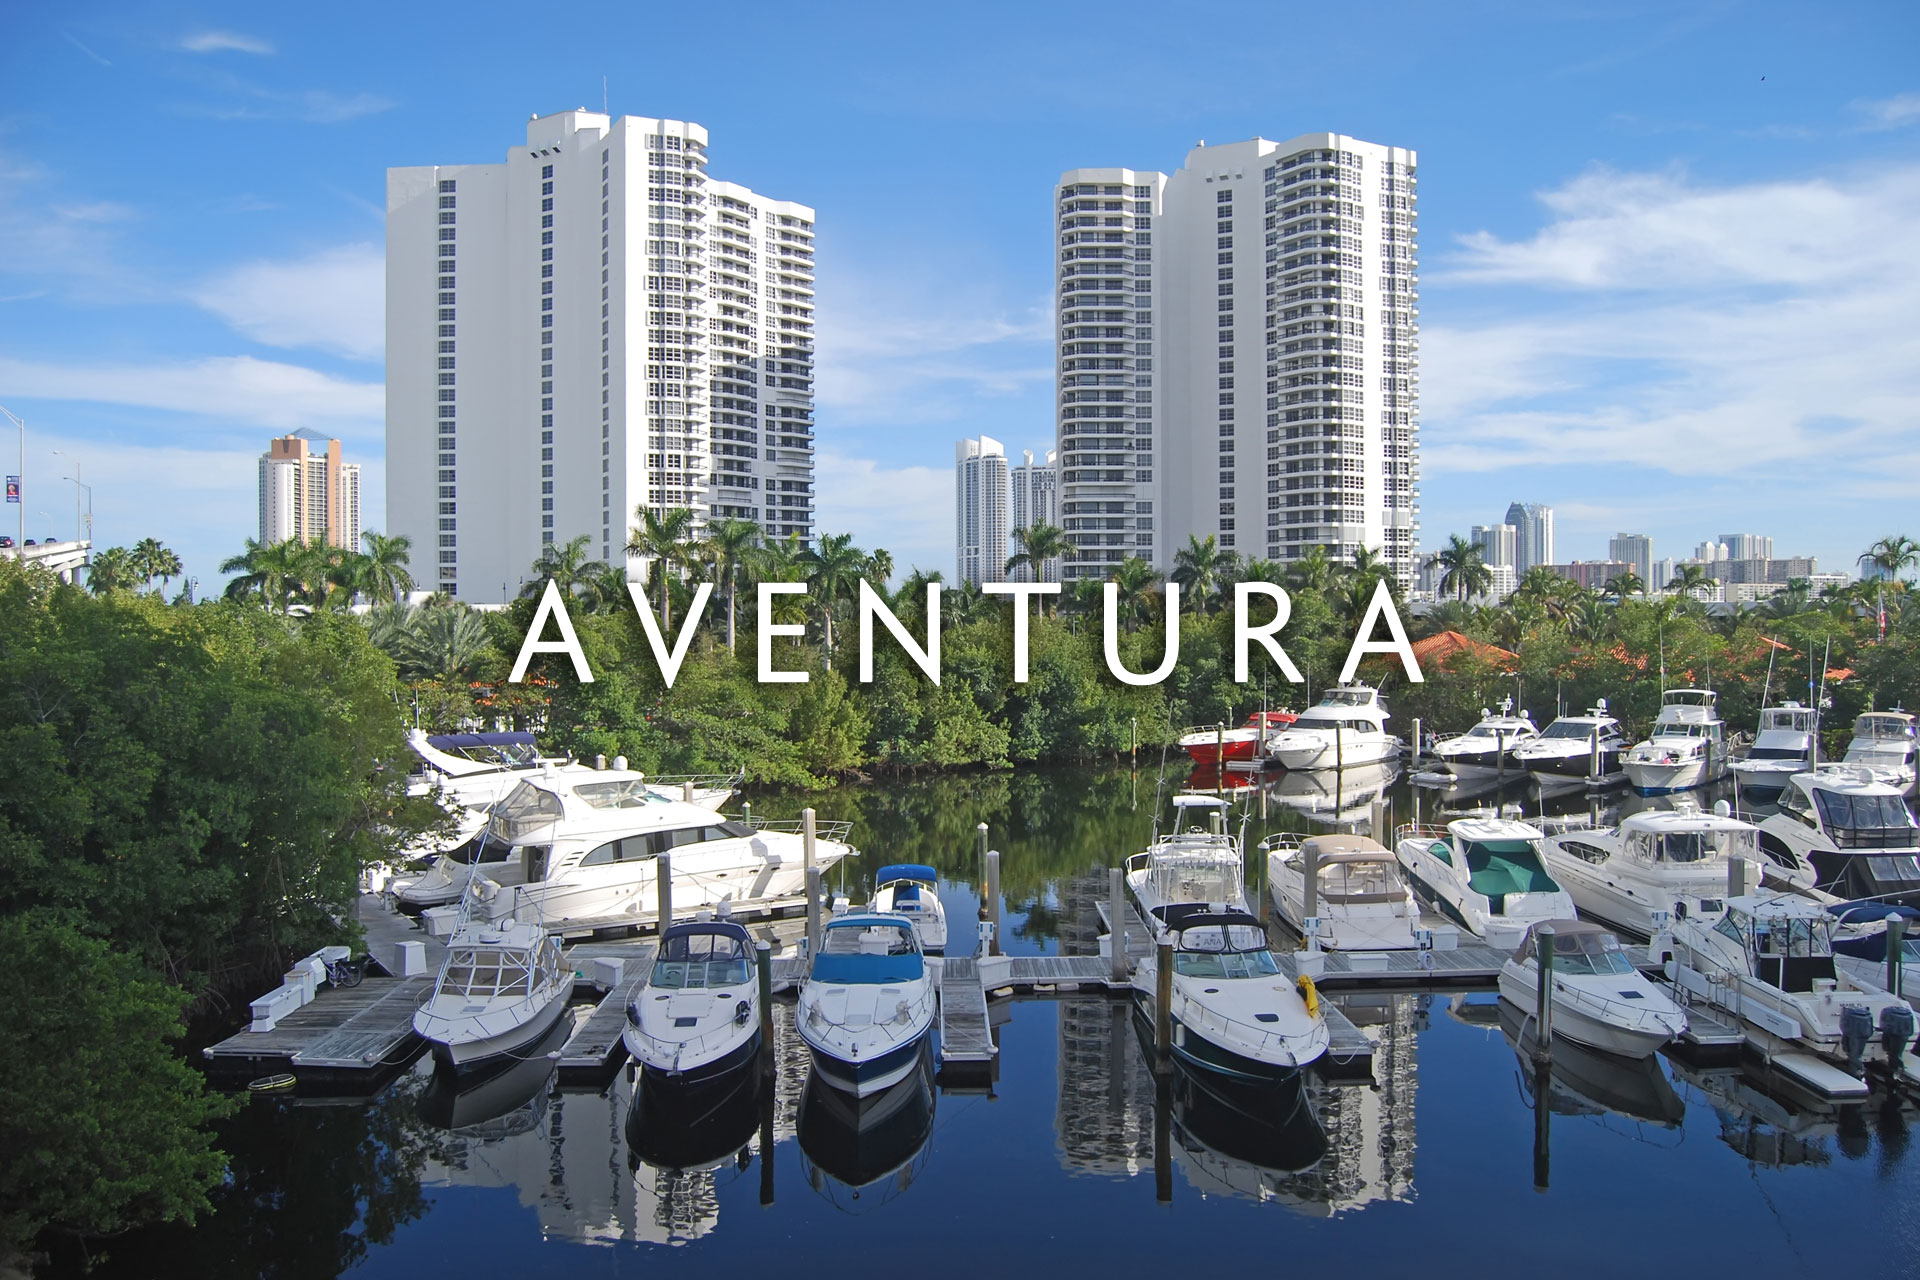 Aventura condo buildings on oceanway with various yachts in front of them